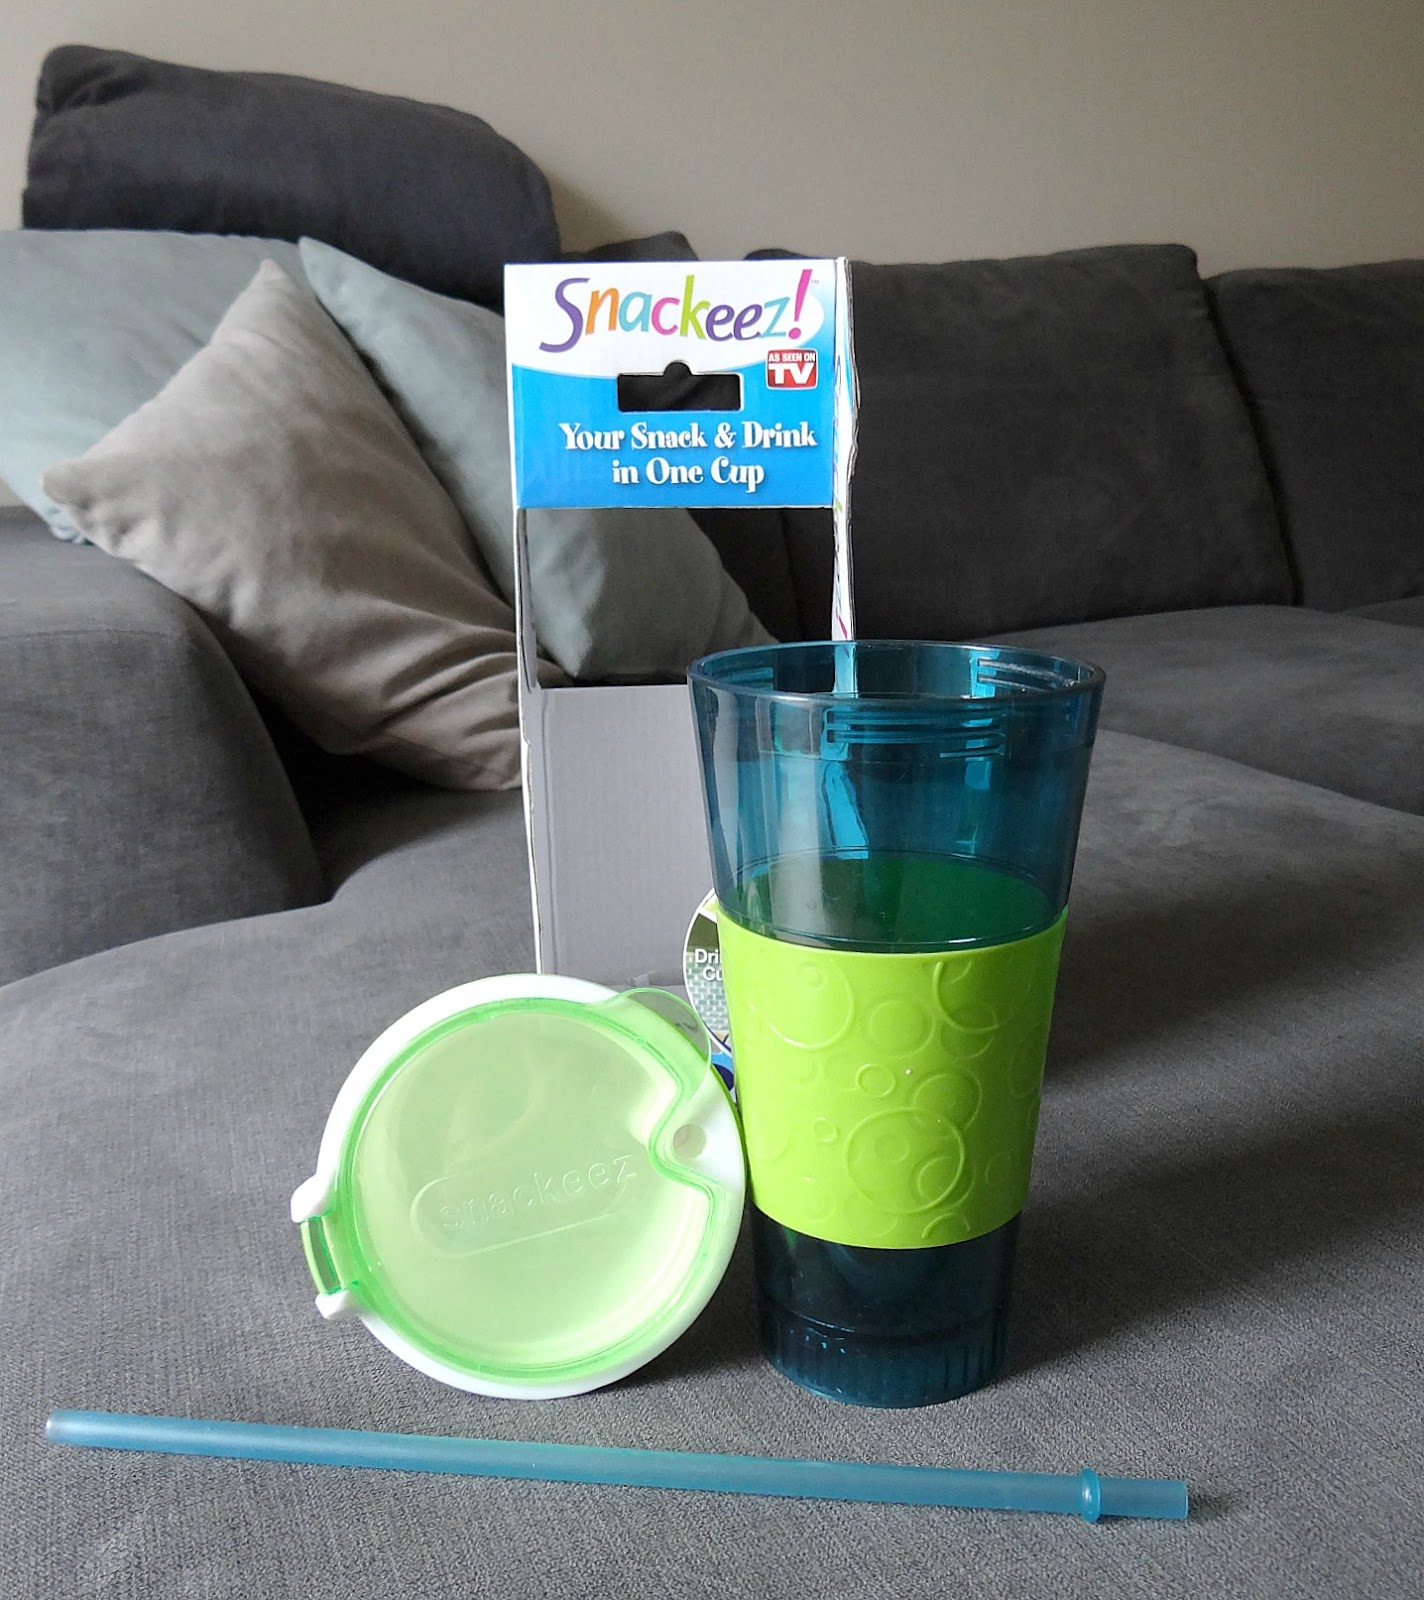 Snackeez! Snack and Drink cup, snack and drink travel cup, no spill on the go cup